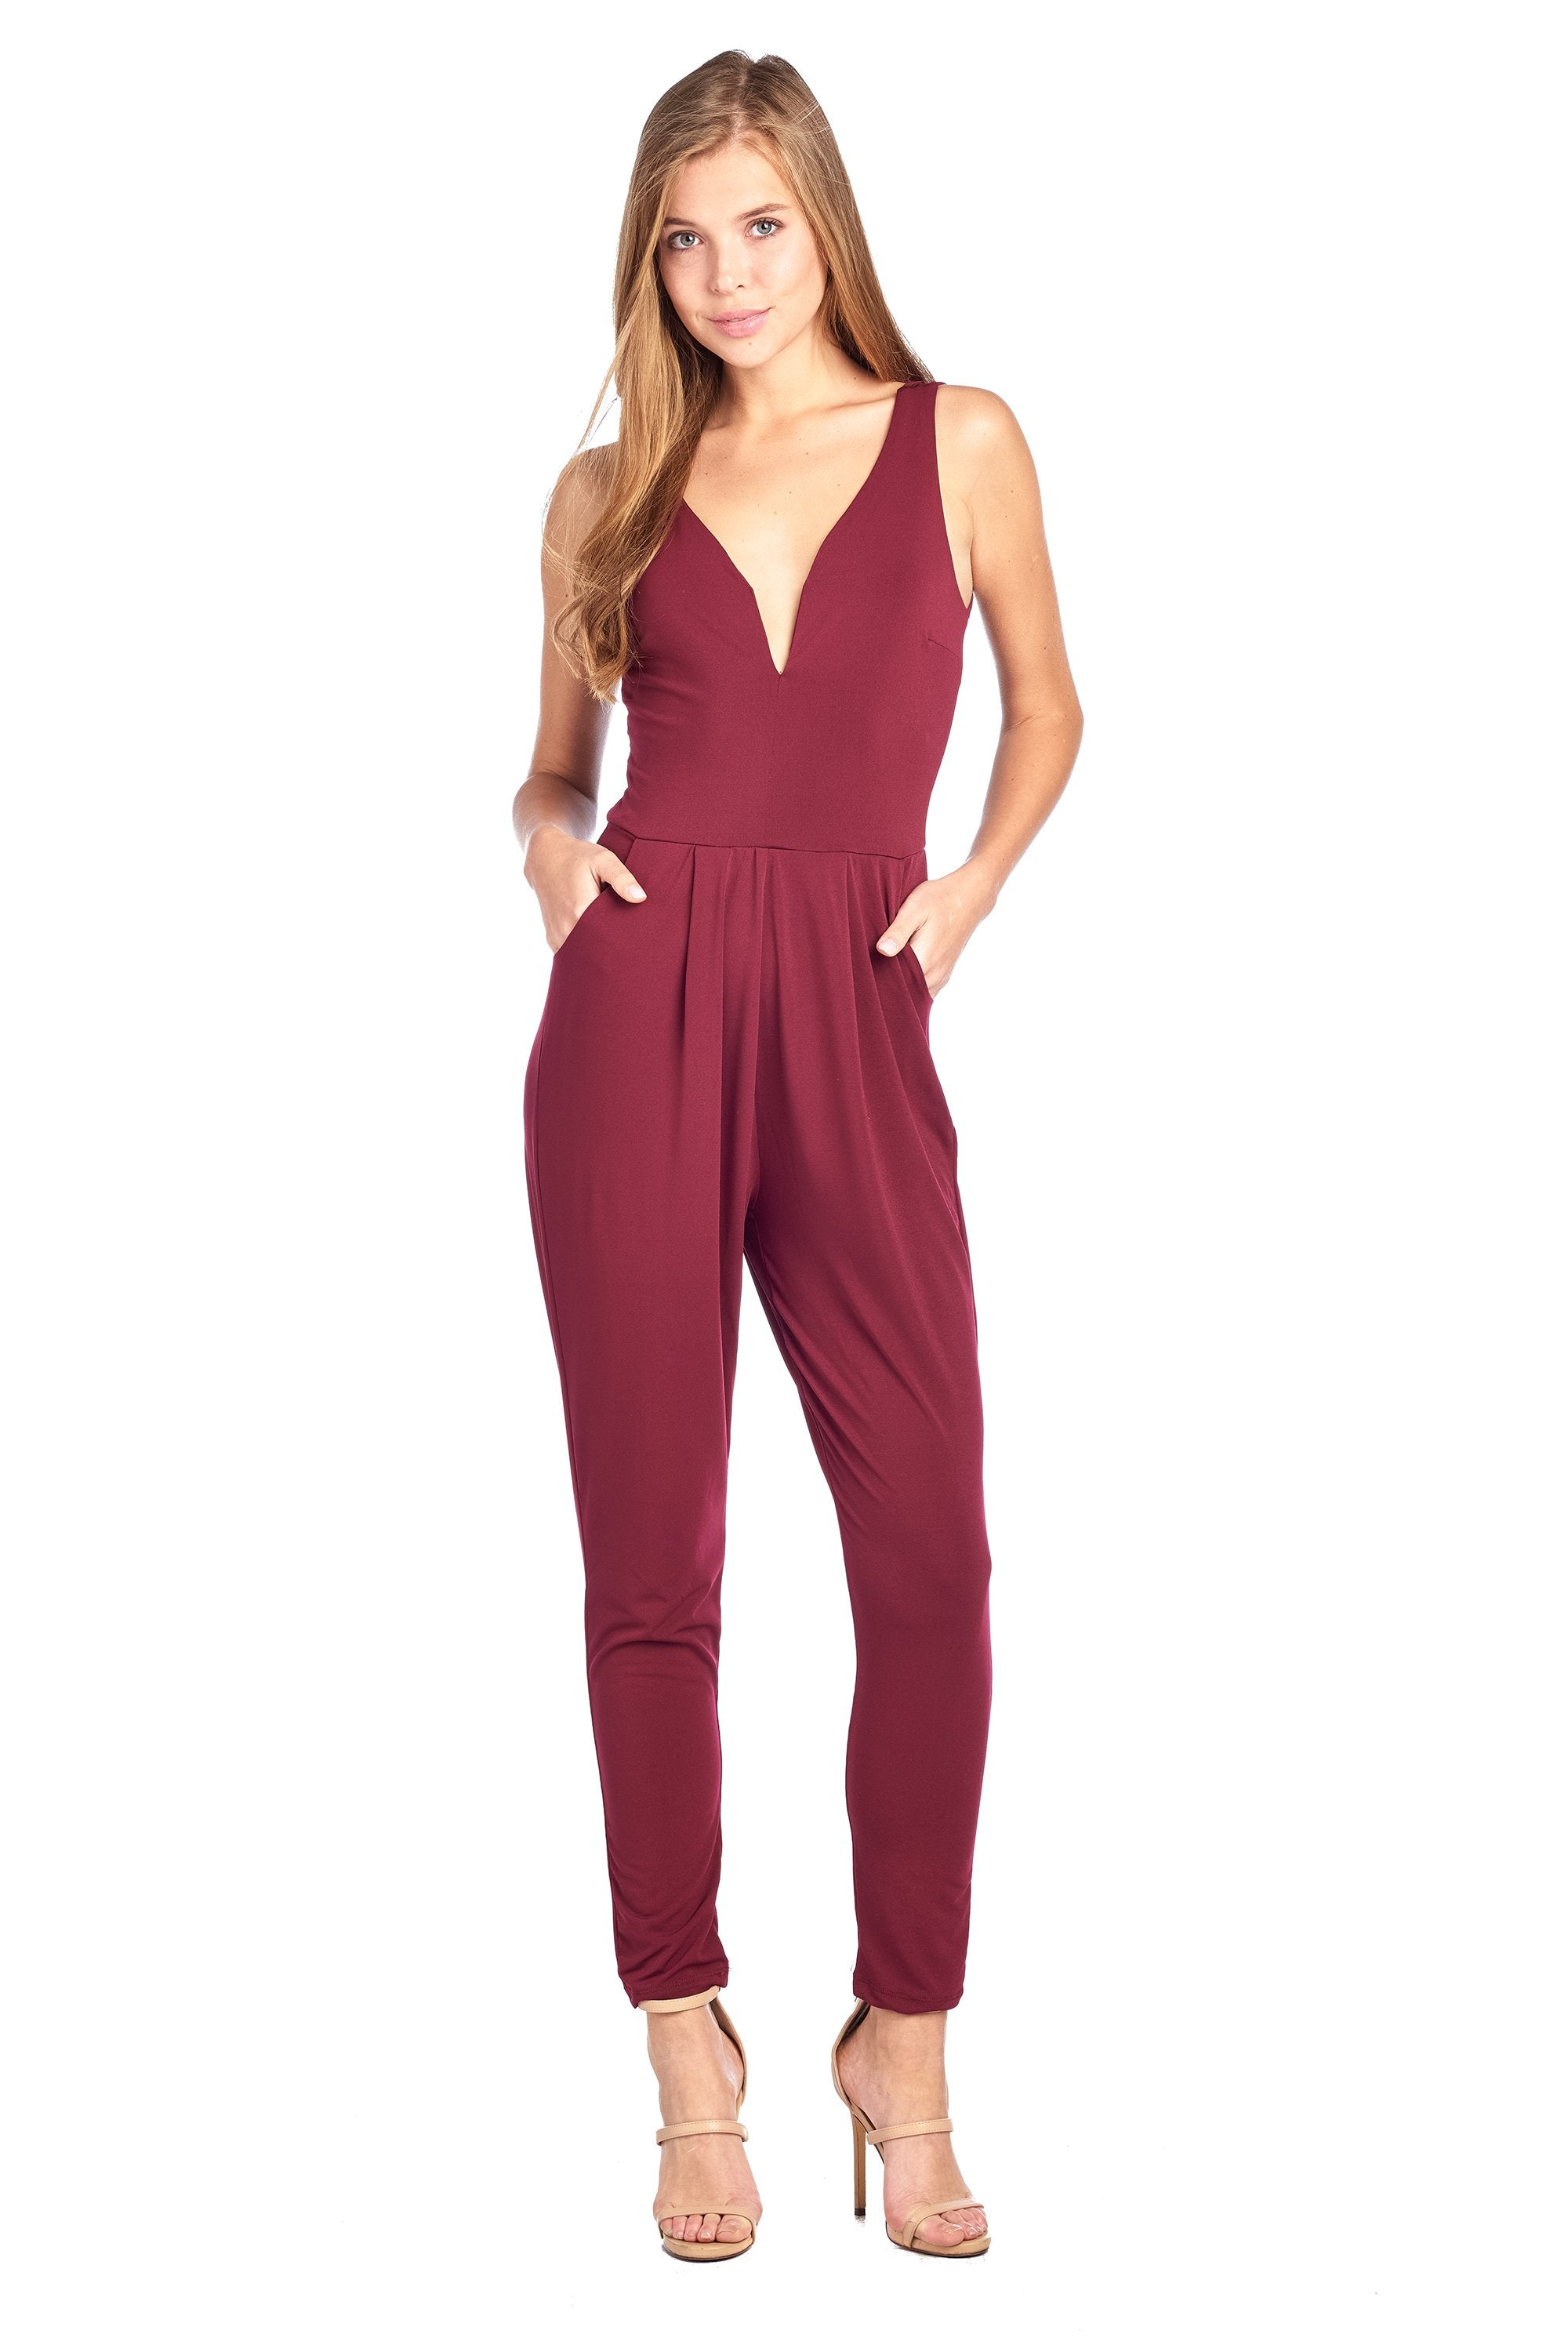 Solid Sleeveless Deep V-wire Neck Slanted Front Pockets Slip On Jumpsuit